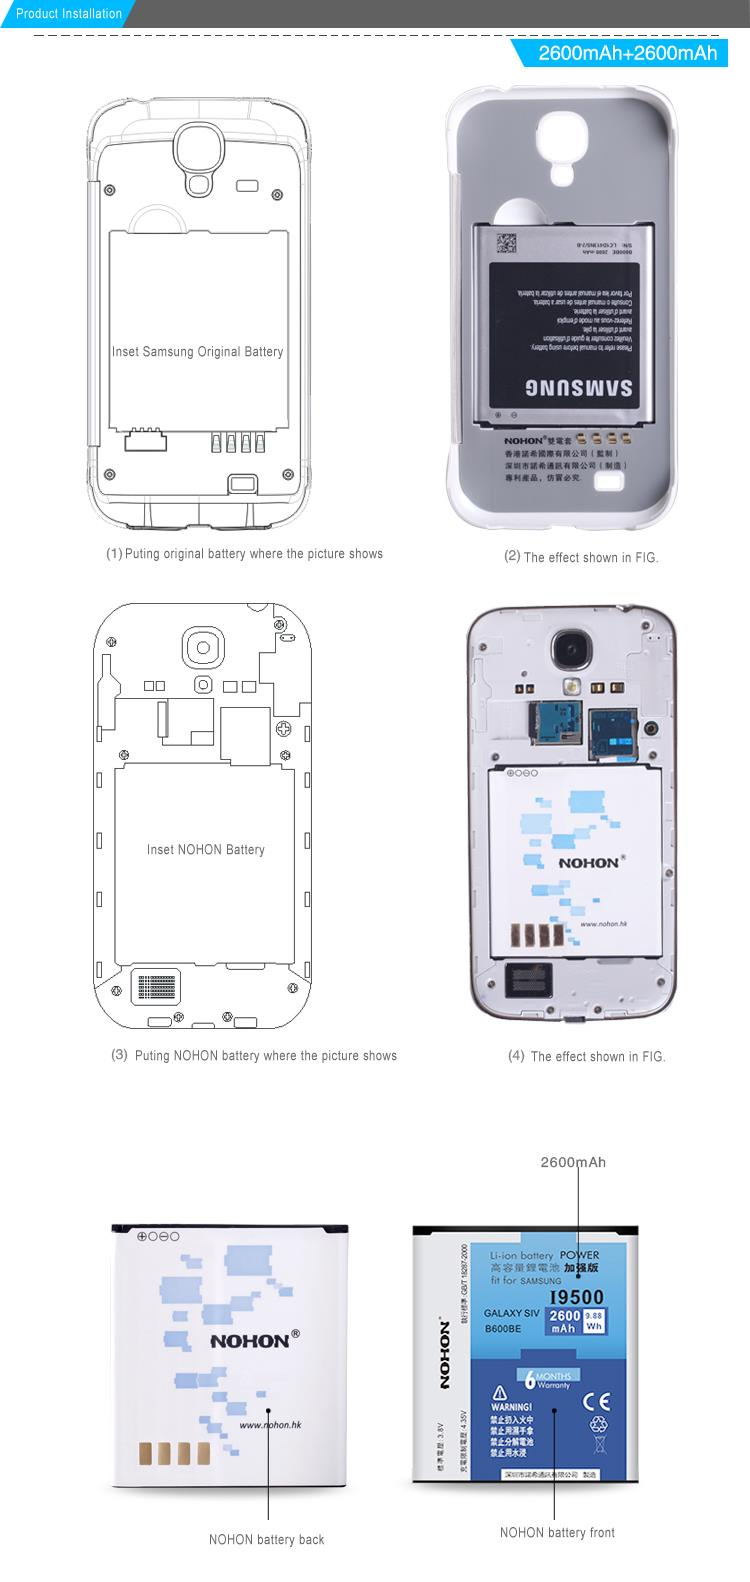 NOHON Phone Back Cover Battery High Capacity 2600mAh Double Electric Case For Samsung Galaxy S4 I9500 I9508 I9502 I959